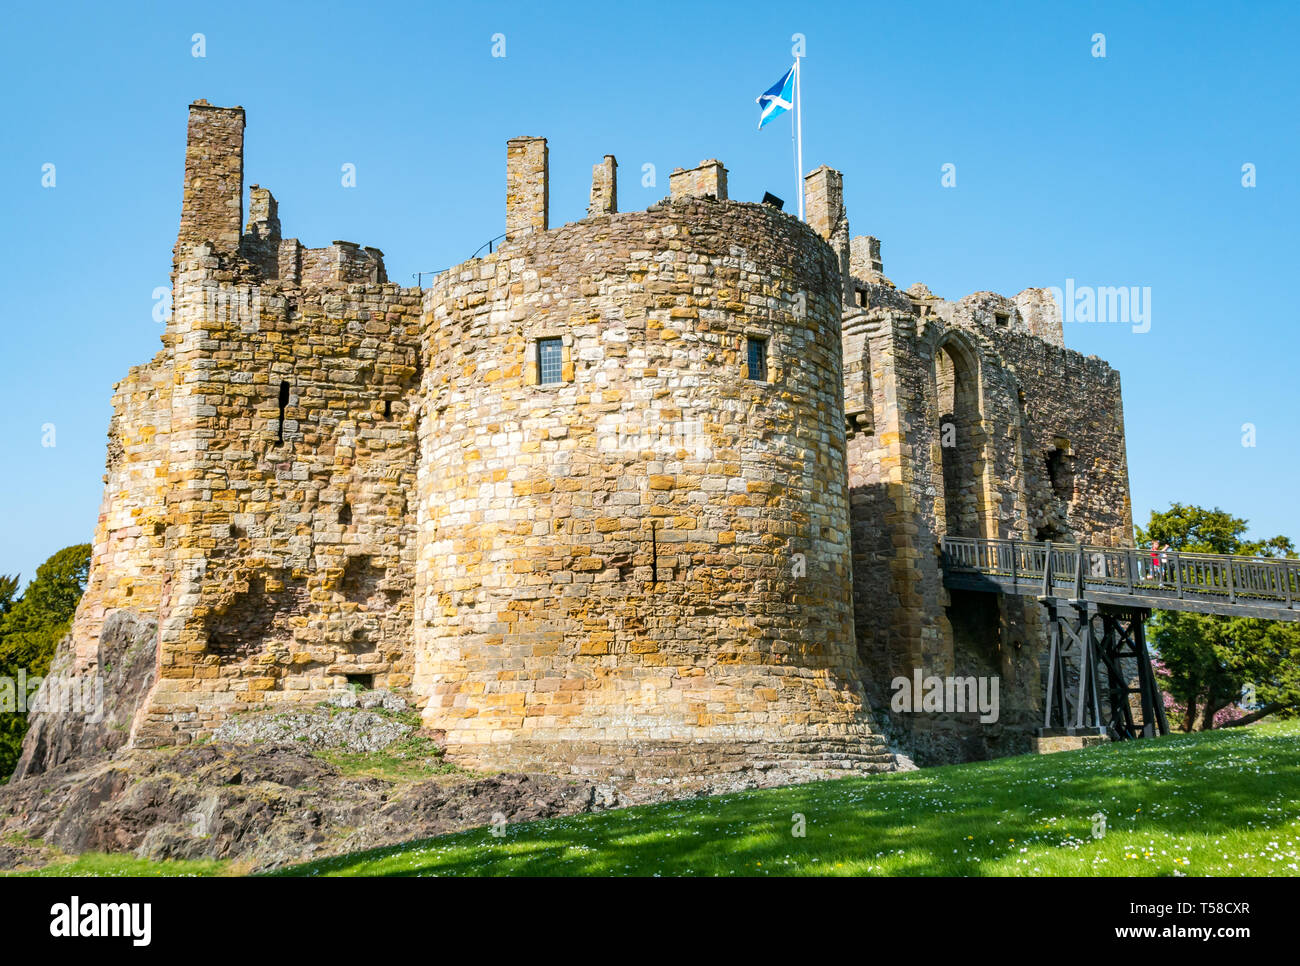 Medieval 13th century Dirleton Castle fortress with moat, popular visitor attraction, East Lothian, Scotland, UK with blue sky - Stock Image